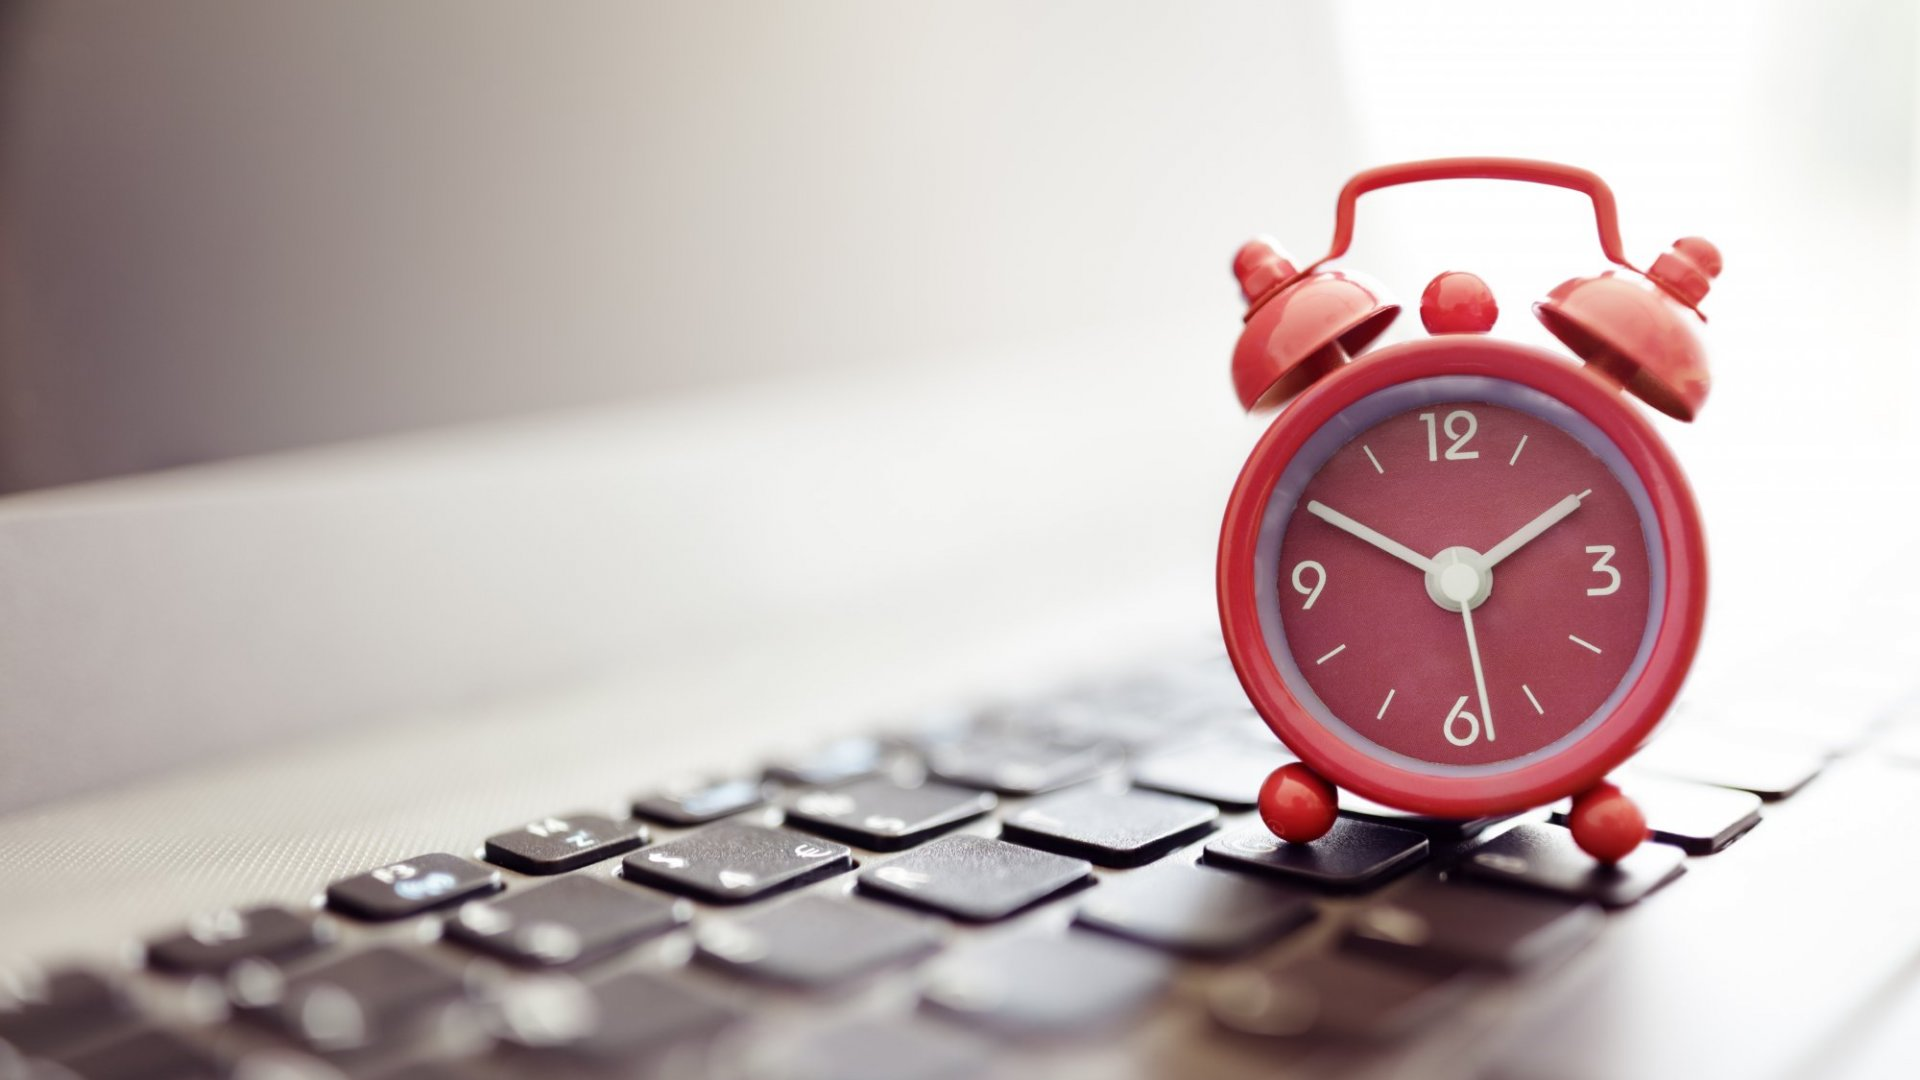 Don't Let Deadlines Waste Your Time